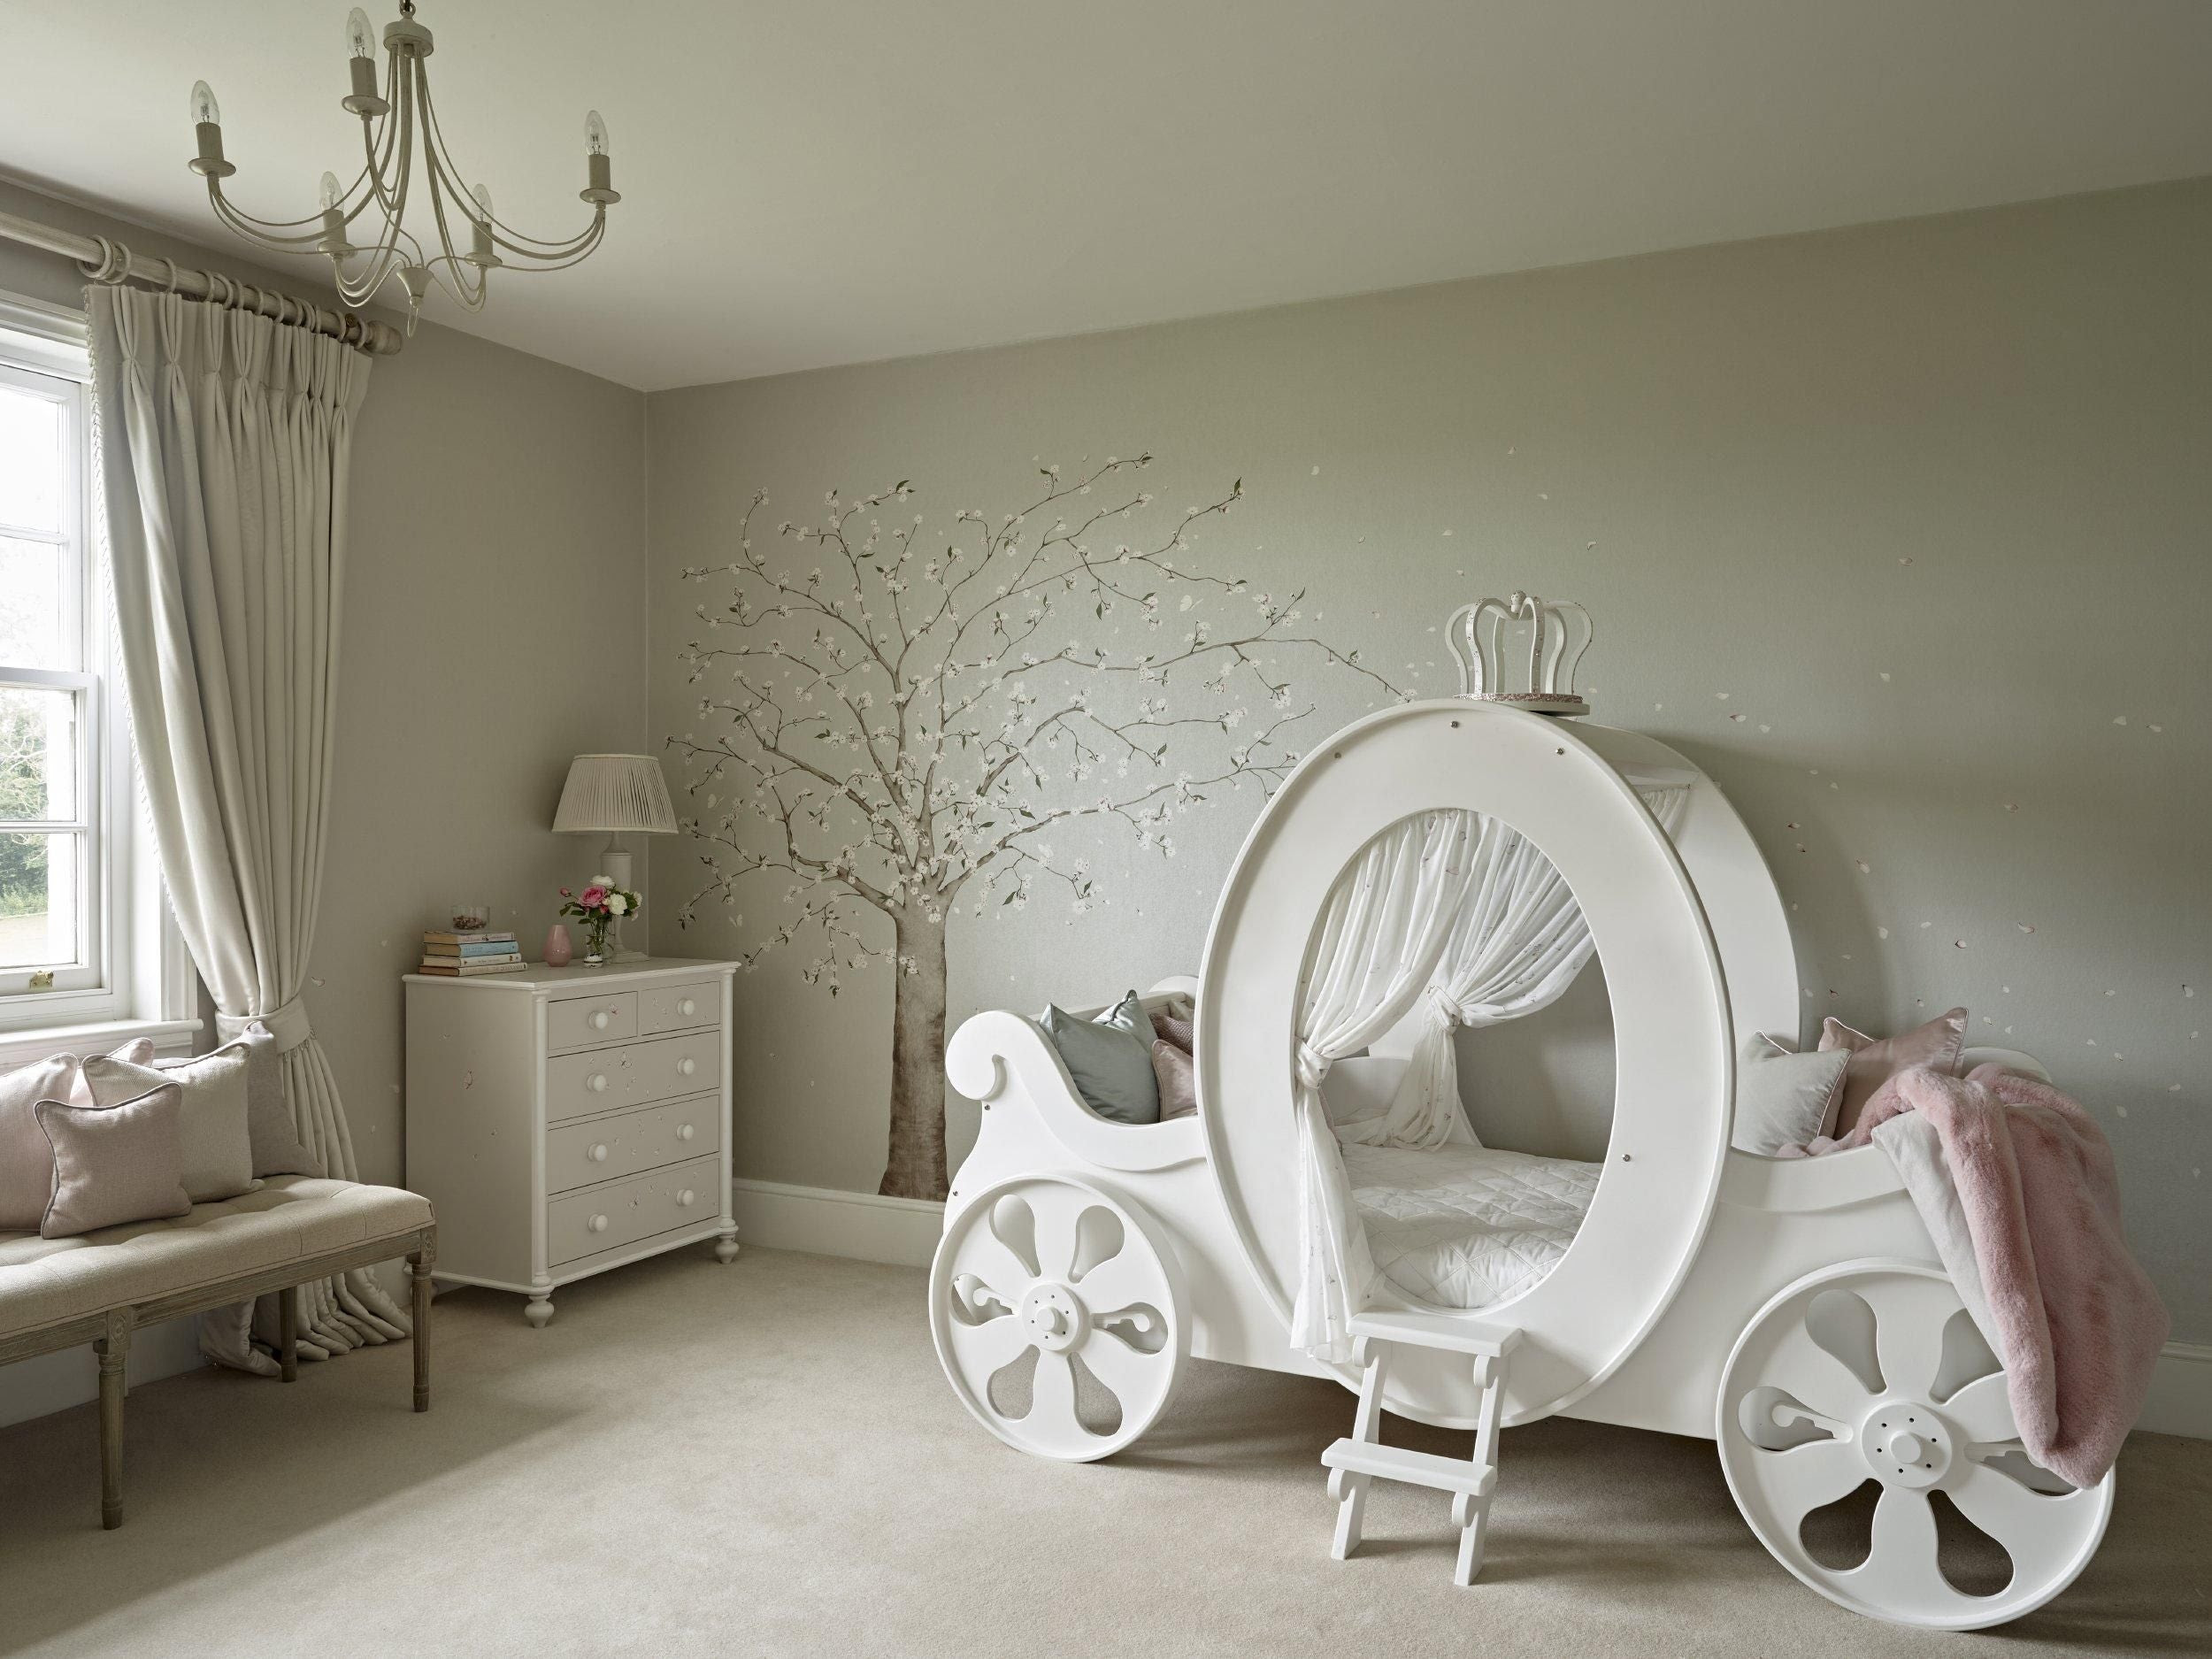 Awesome bespoke carriage bed for kids bedroom